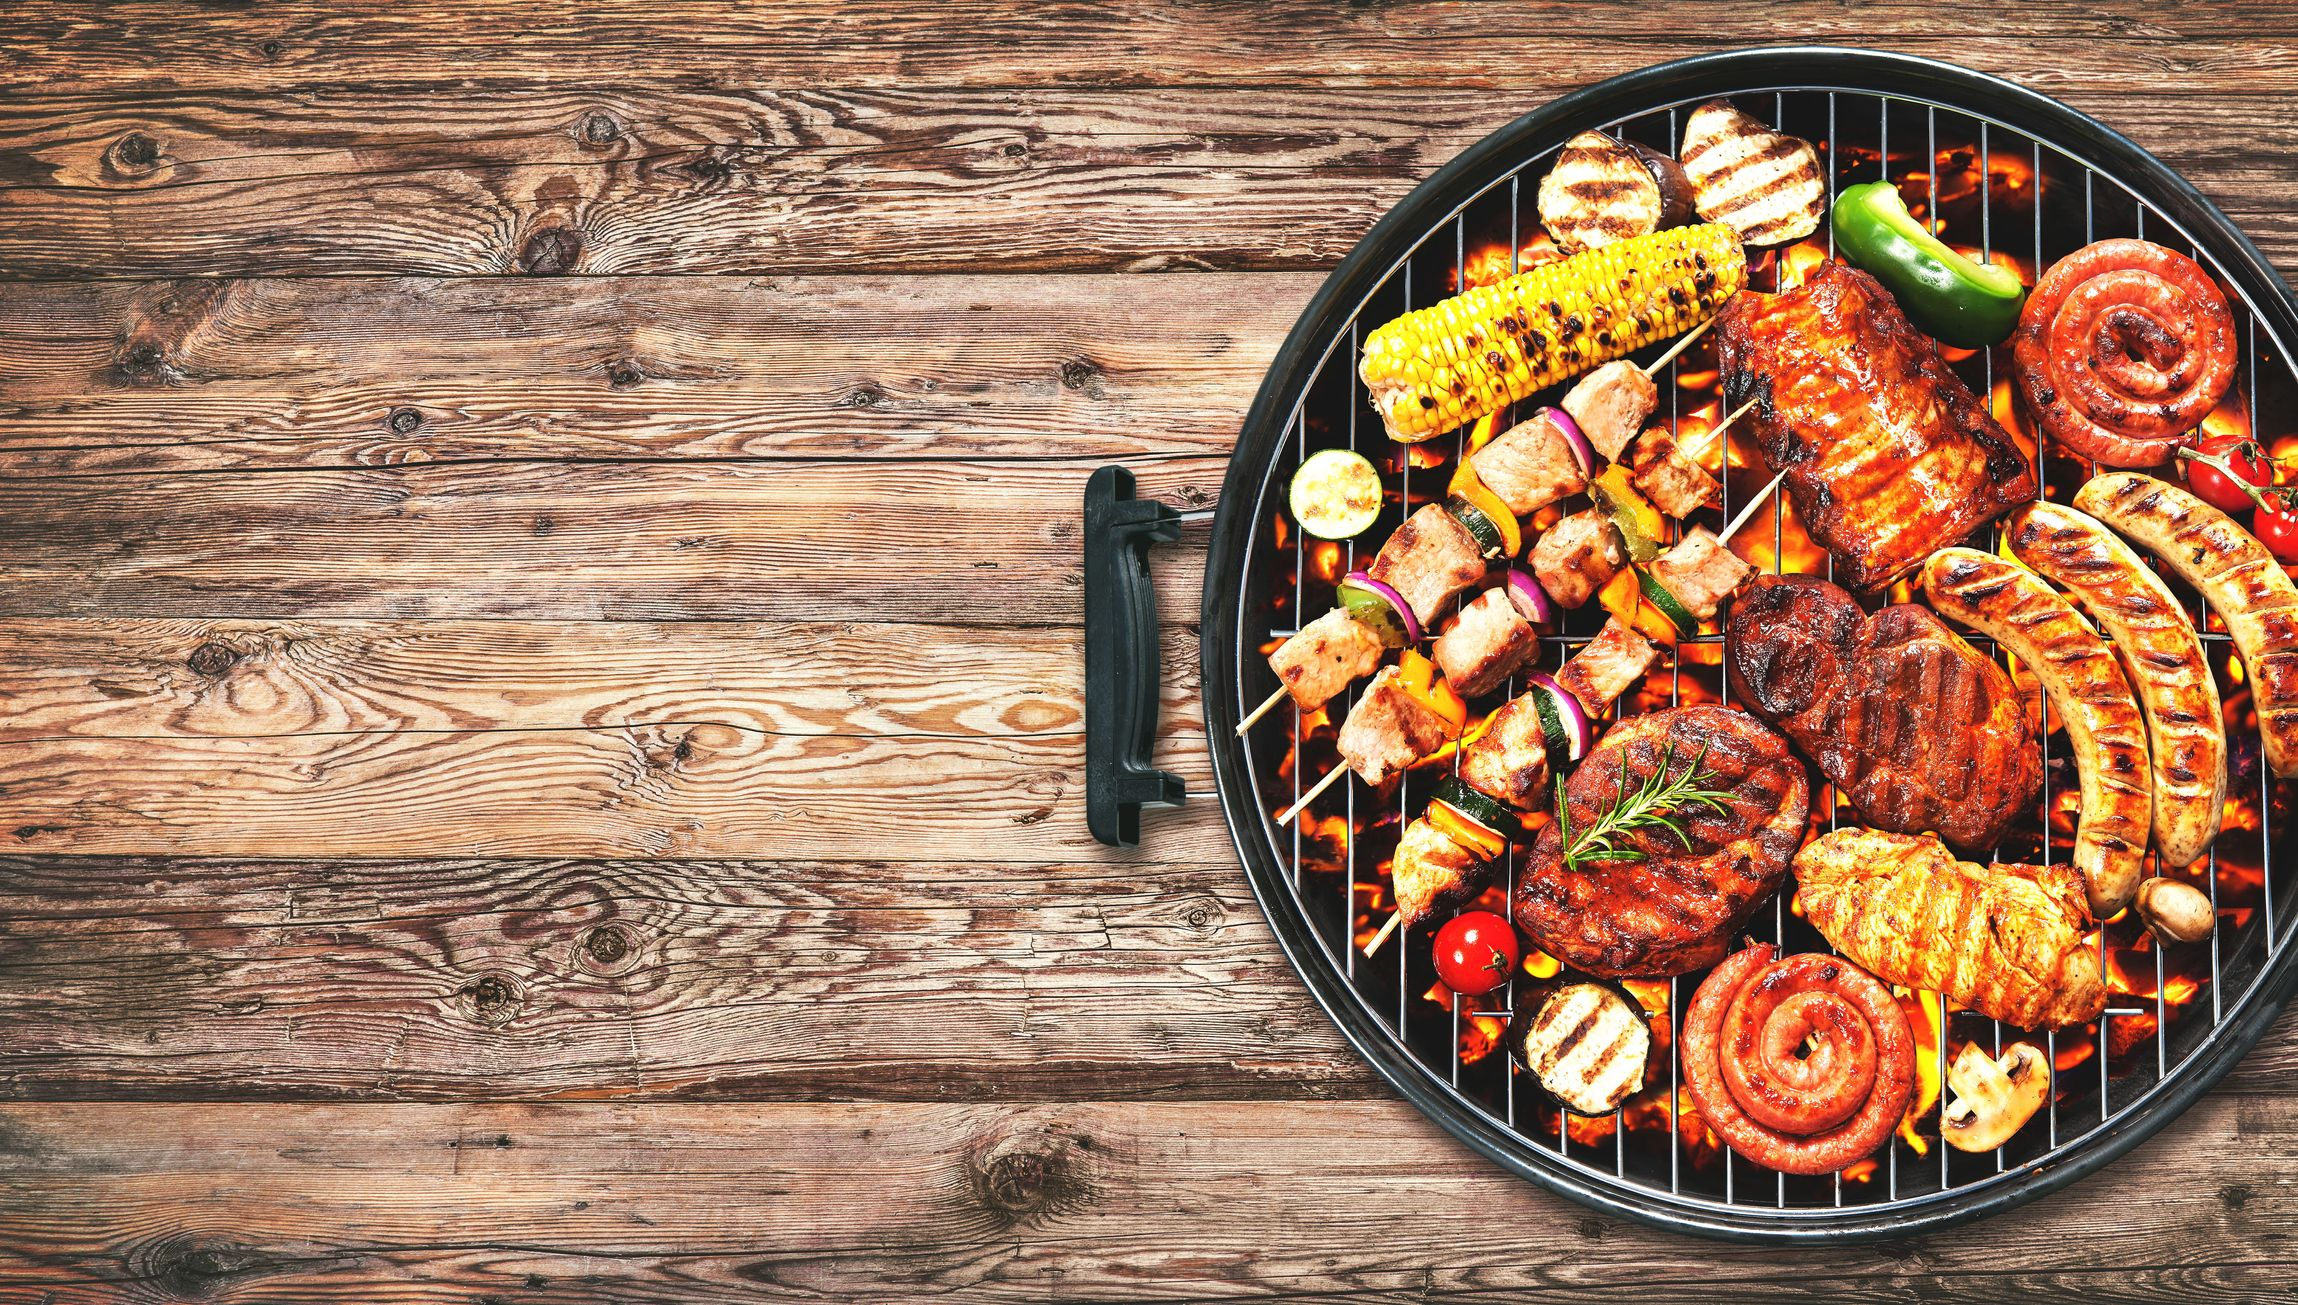 Healthy Meats to Eat: How to Pick the Best Beef, Pork, and Fish